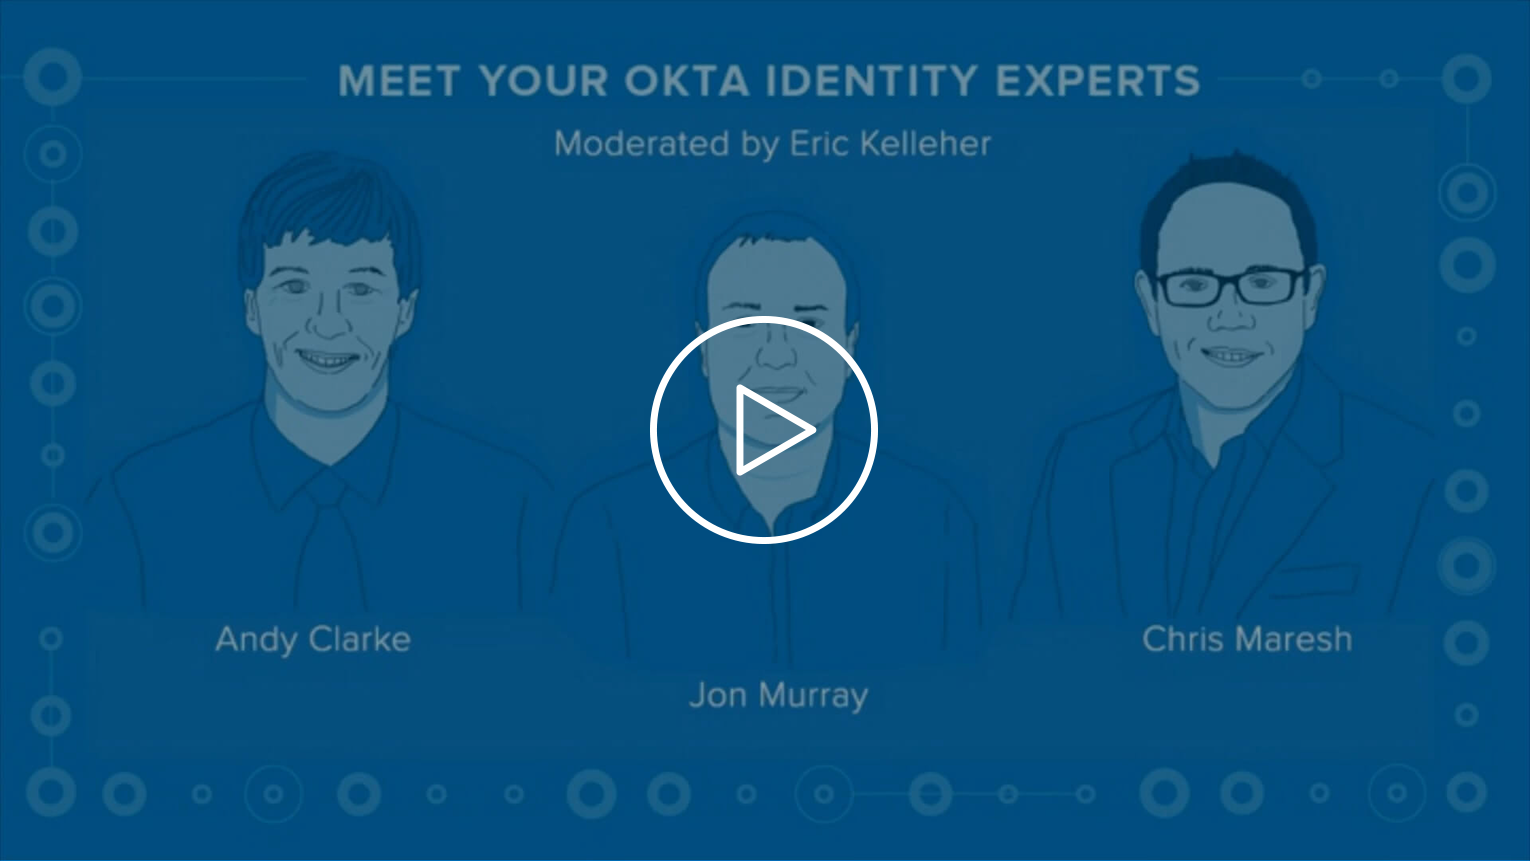 meet your identity experts overlay